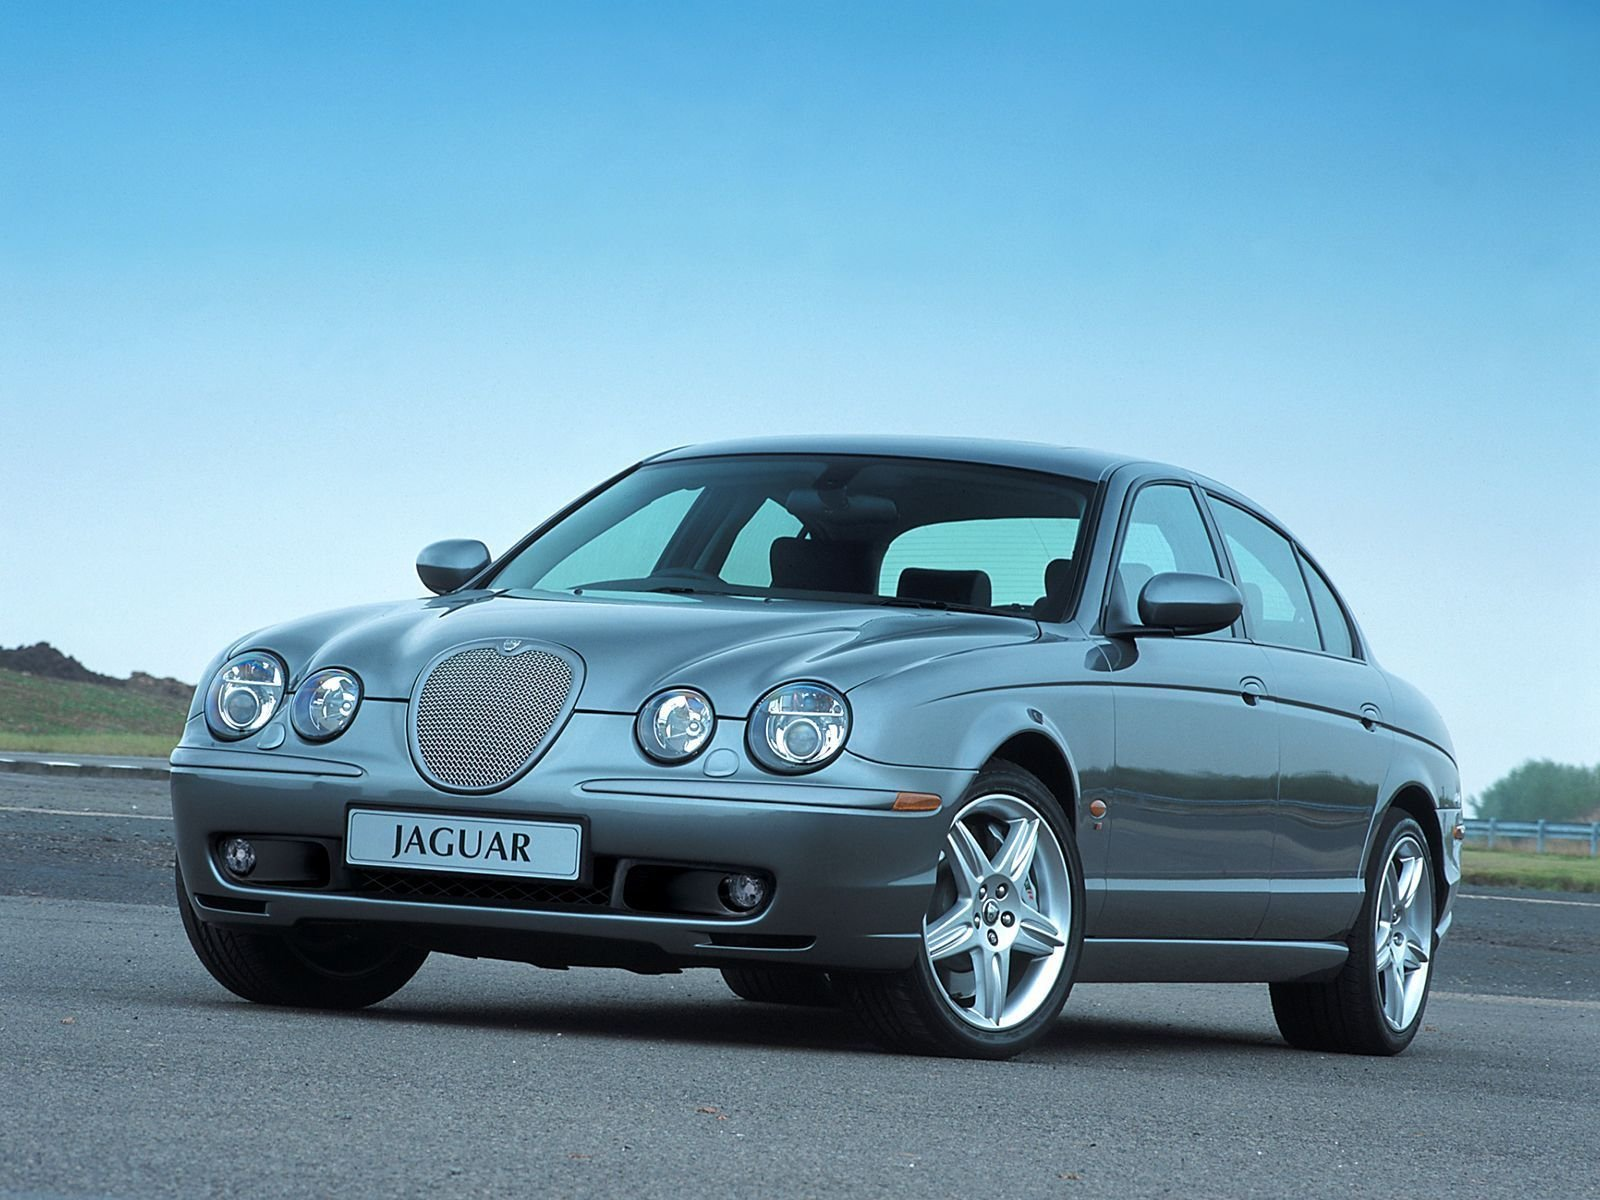 2004 Jaguar S-type Review - Top Speed